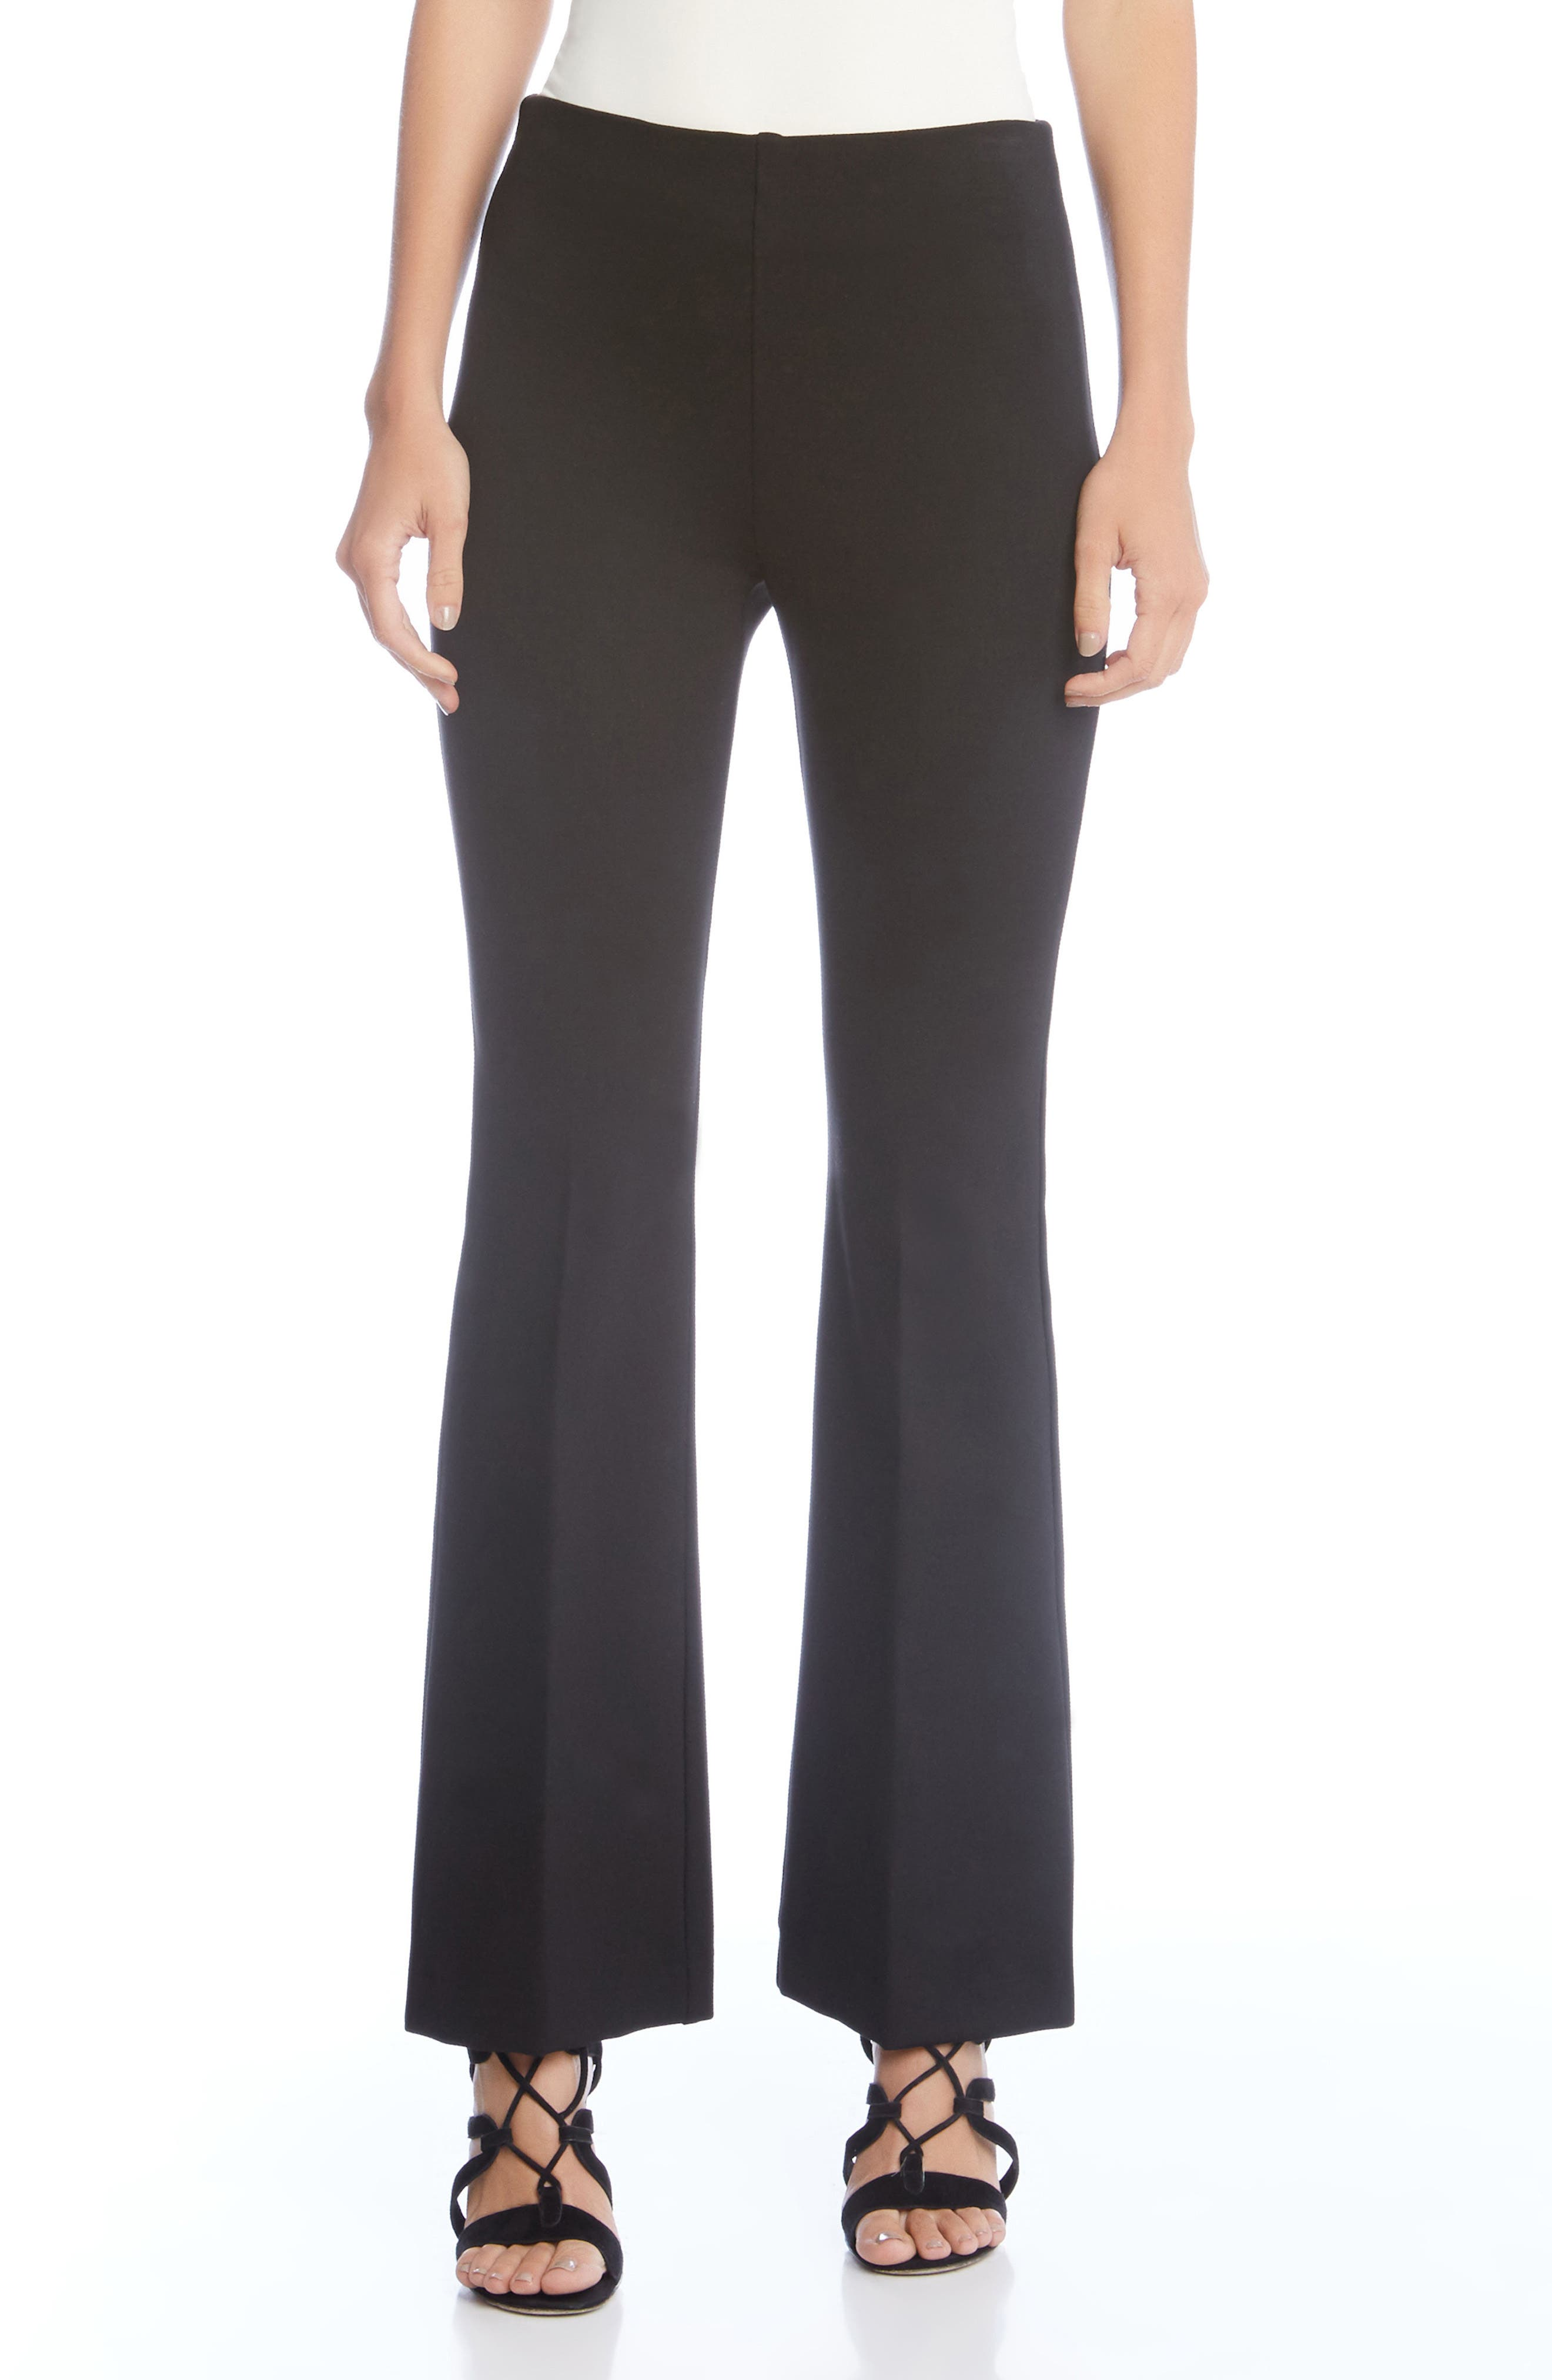 Alternate Image 1 Selected - Karen Kane Pull-On Bootcut Pants